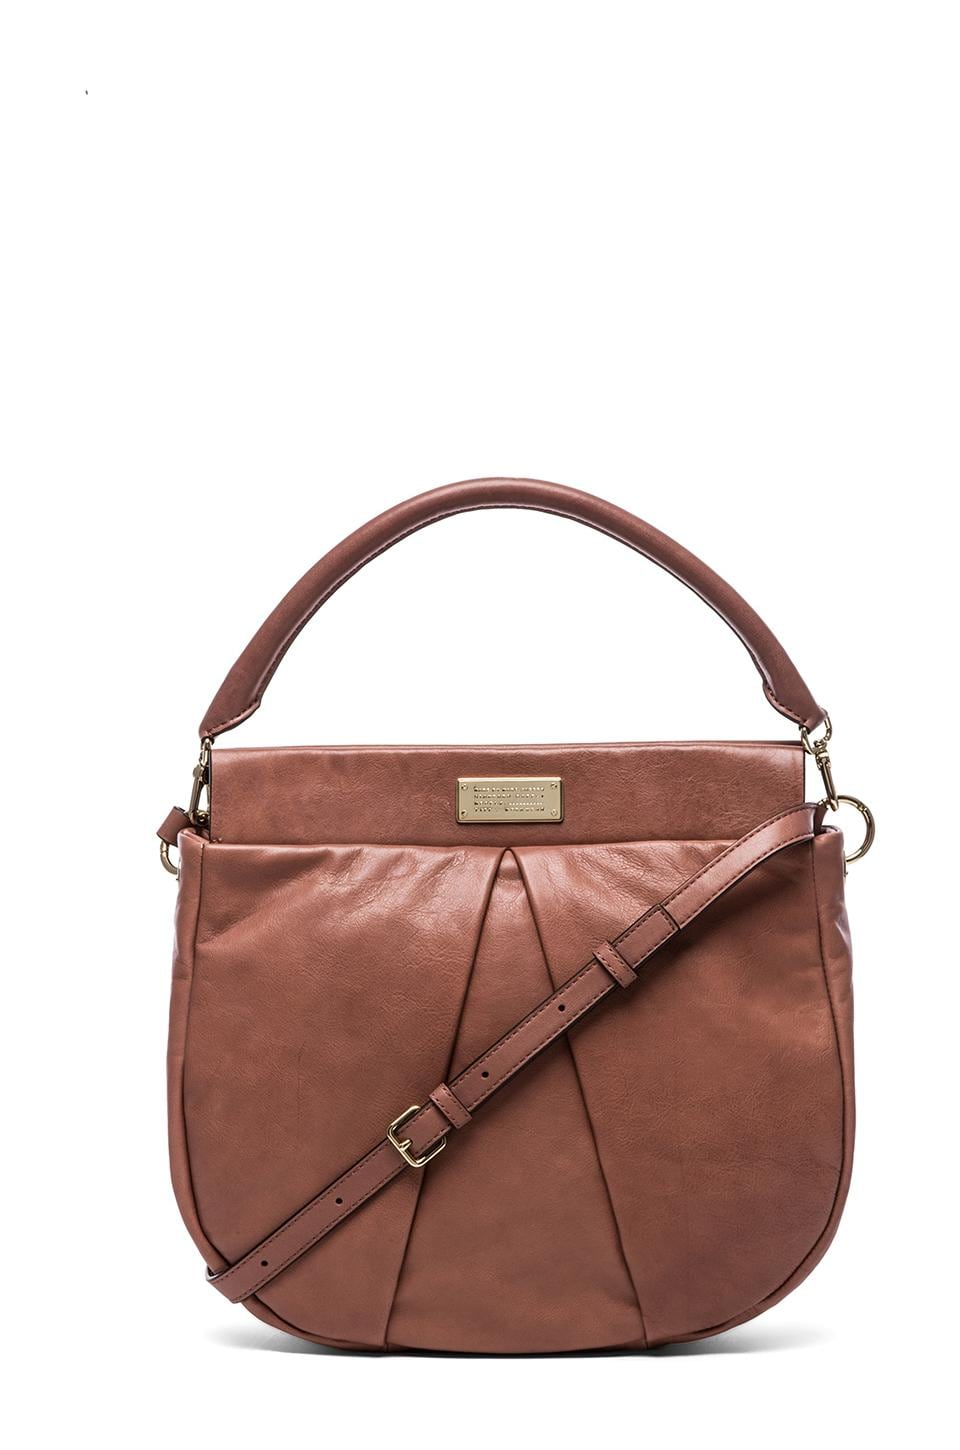 Marc by Marc Jacobs Marchive Hilli Hobo in Woodland